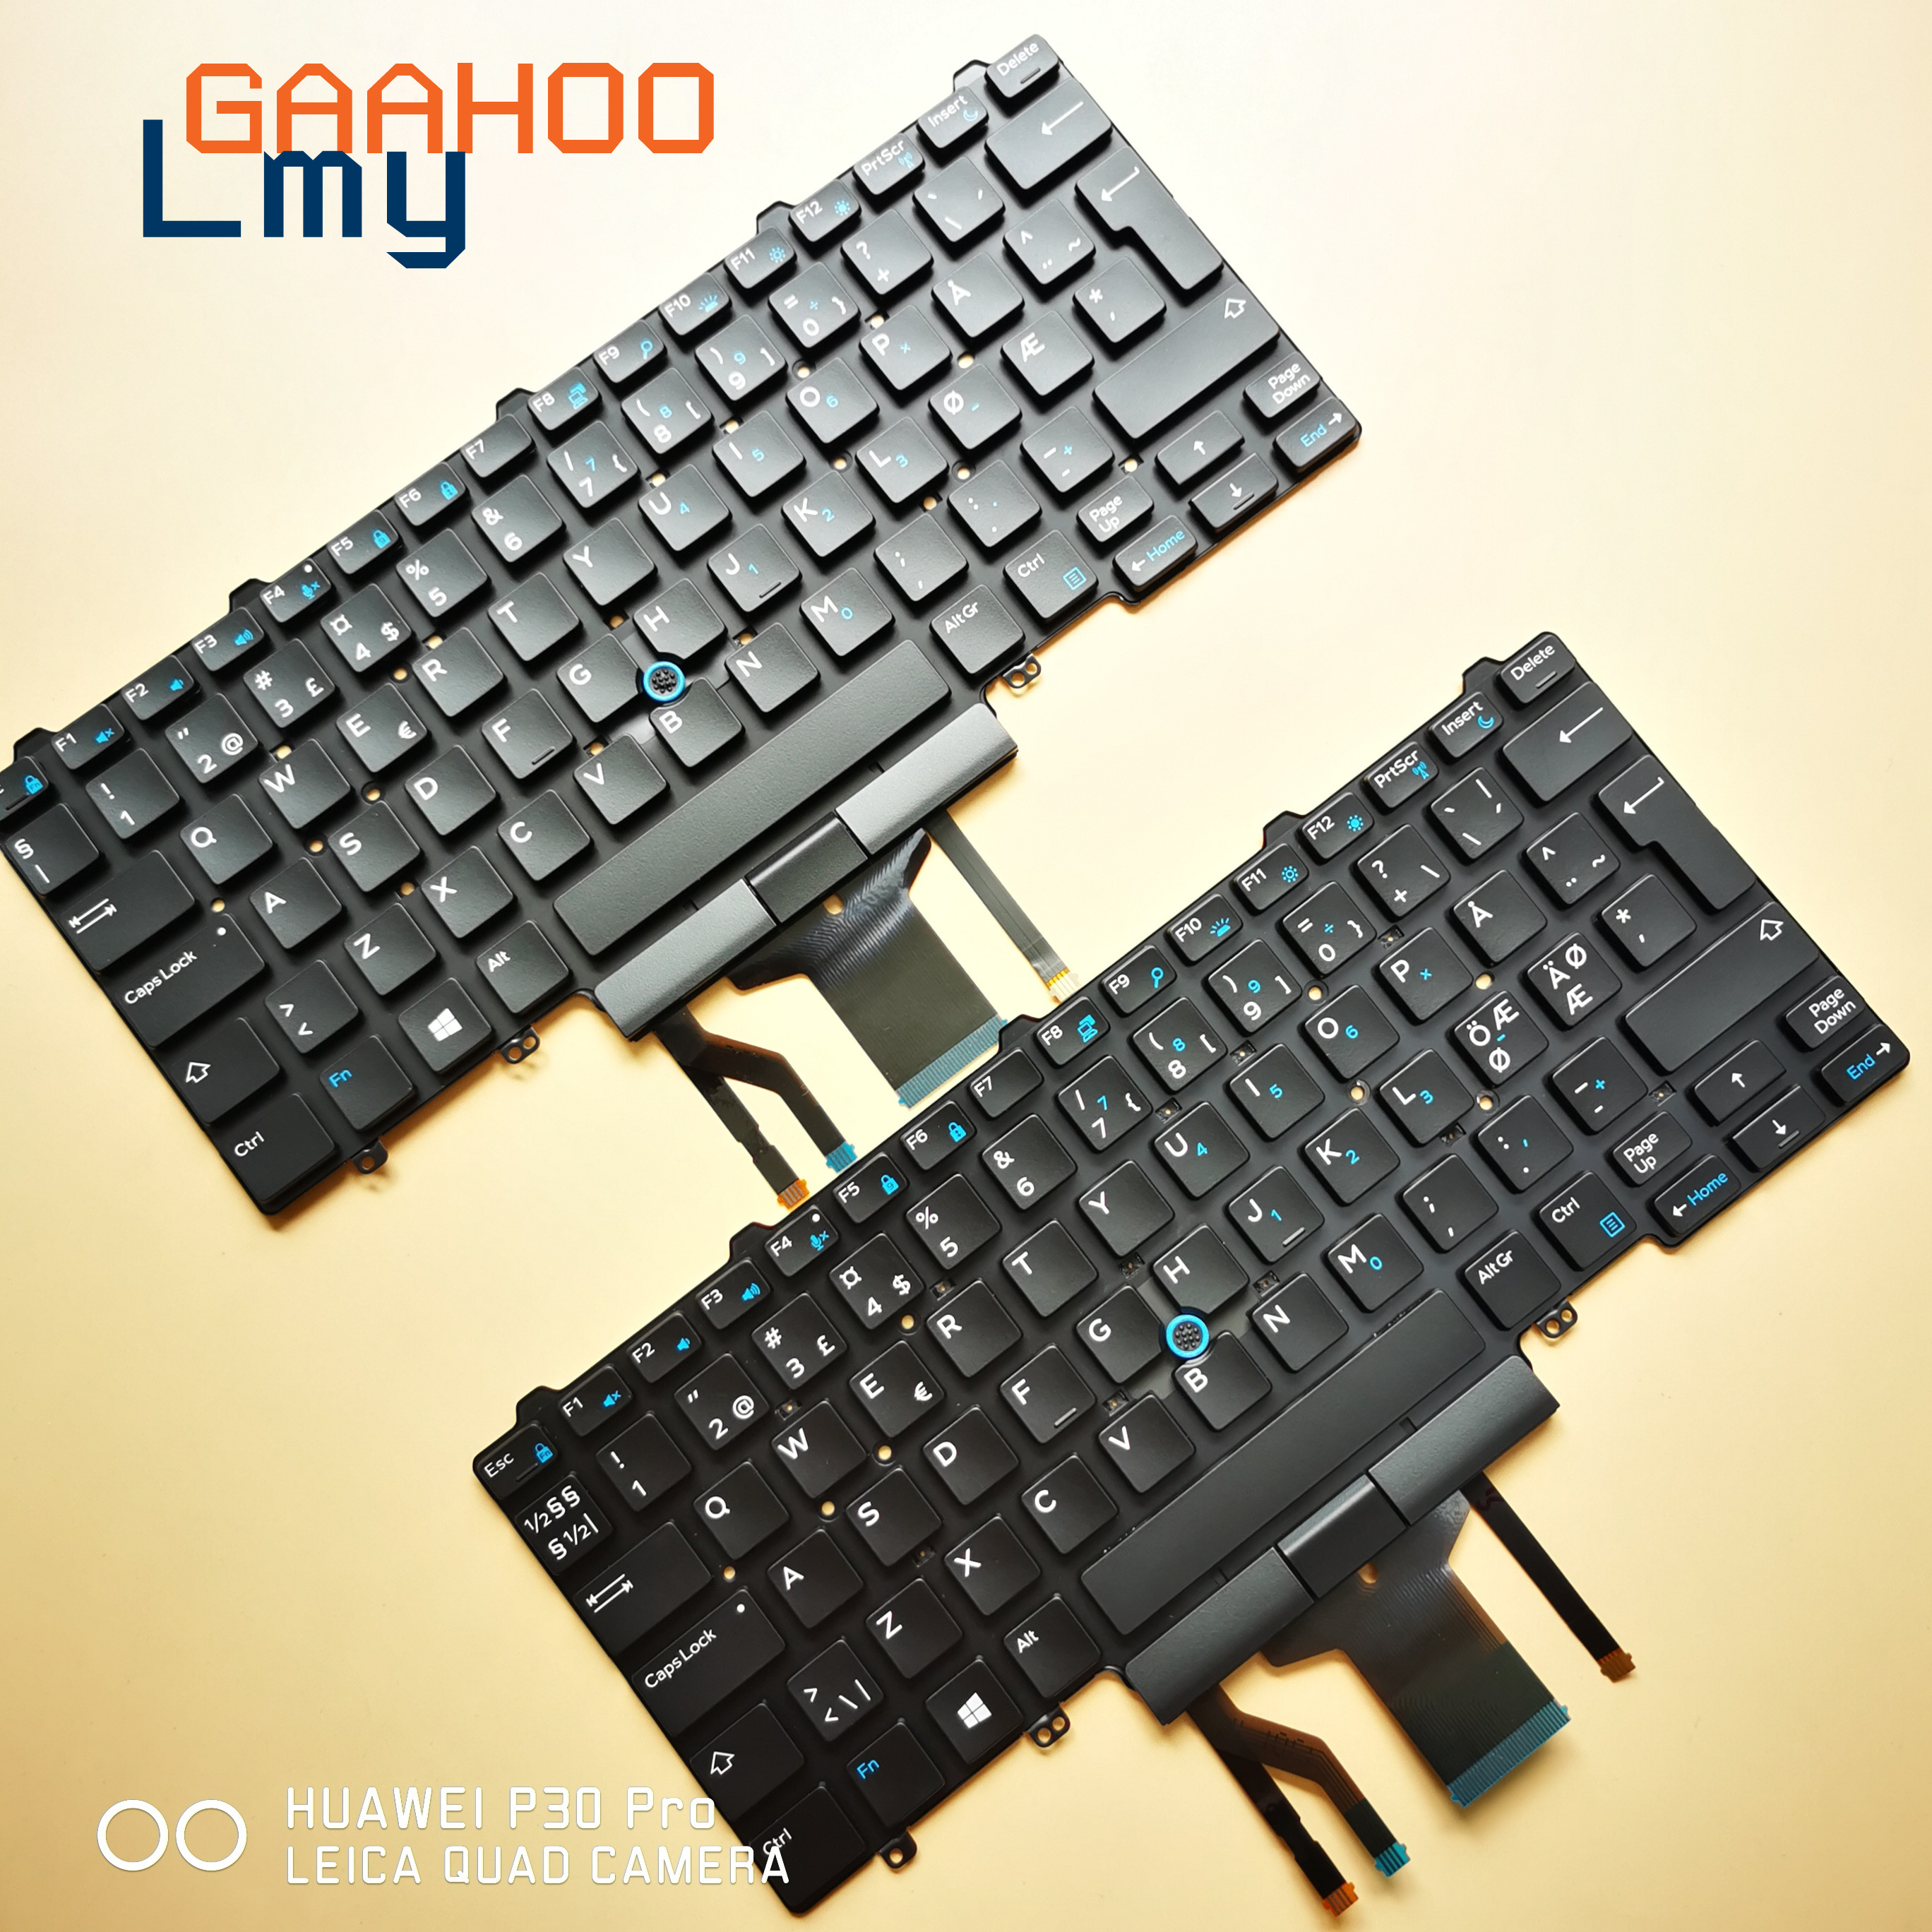 NORDI NORW Laptop Keyboard For For Dell Latitude  E5450 E7450  7470 7480 7490 5470 5480  5490 Black /w Backlit  And Trackpoint